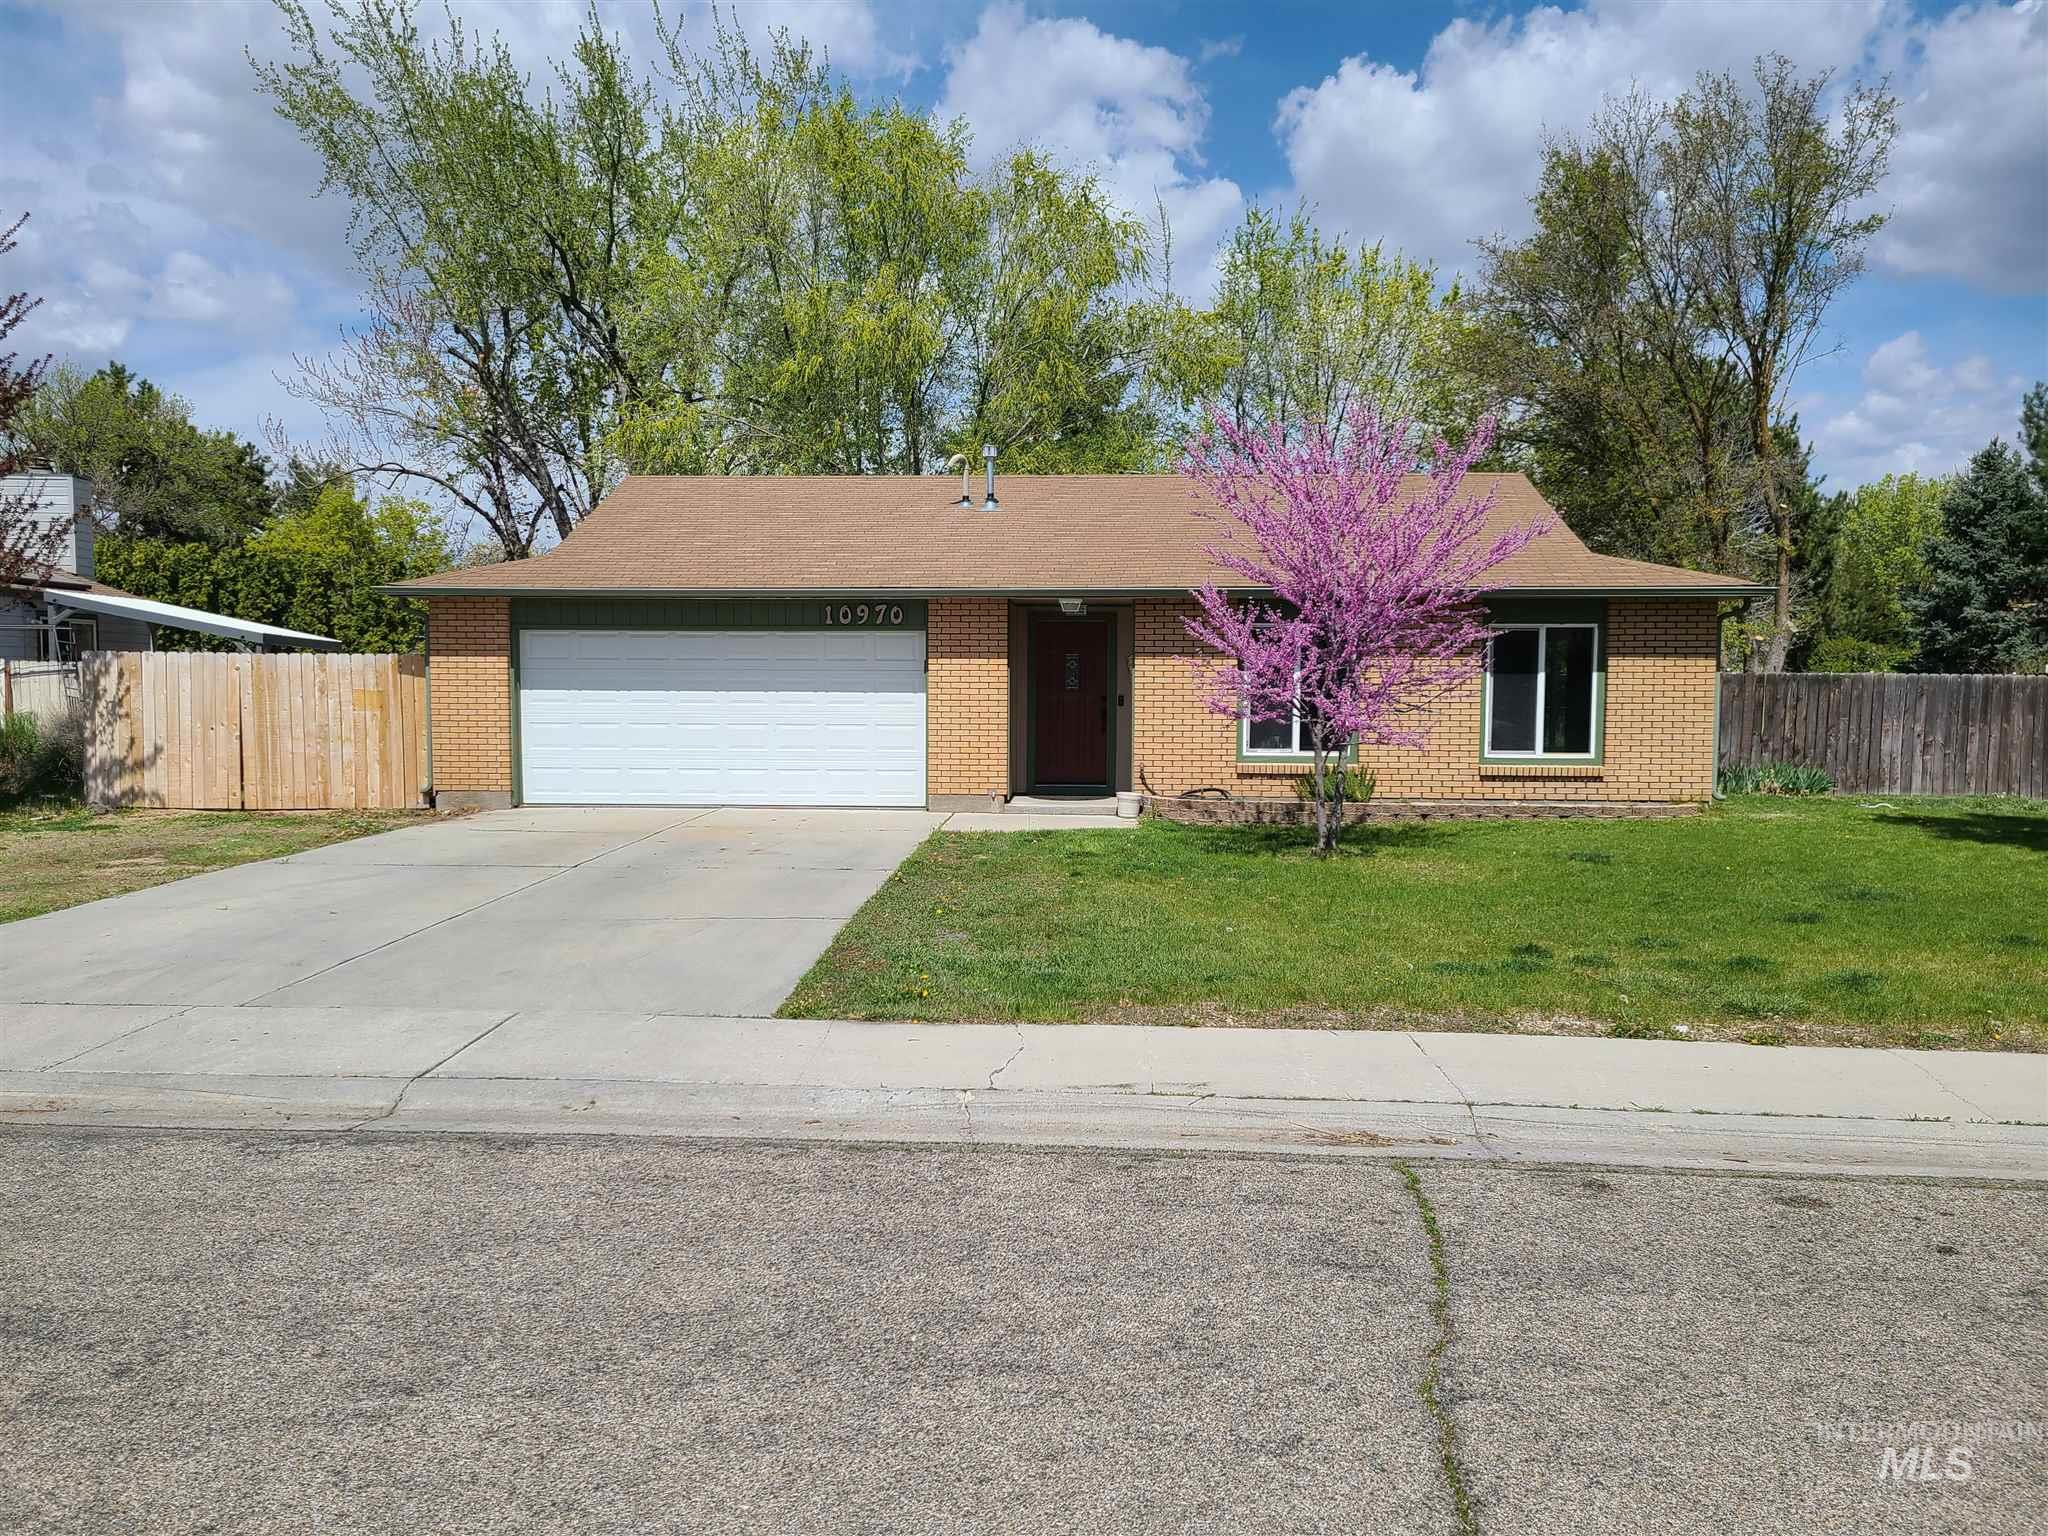 10970 W MUSKET Property Photo - Boise, ID real estate listing